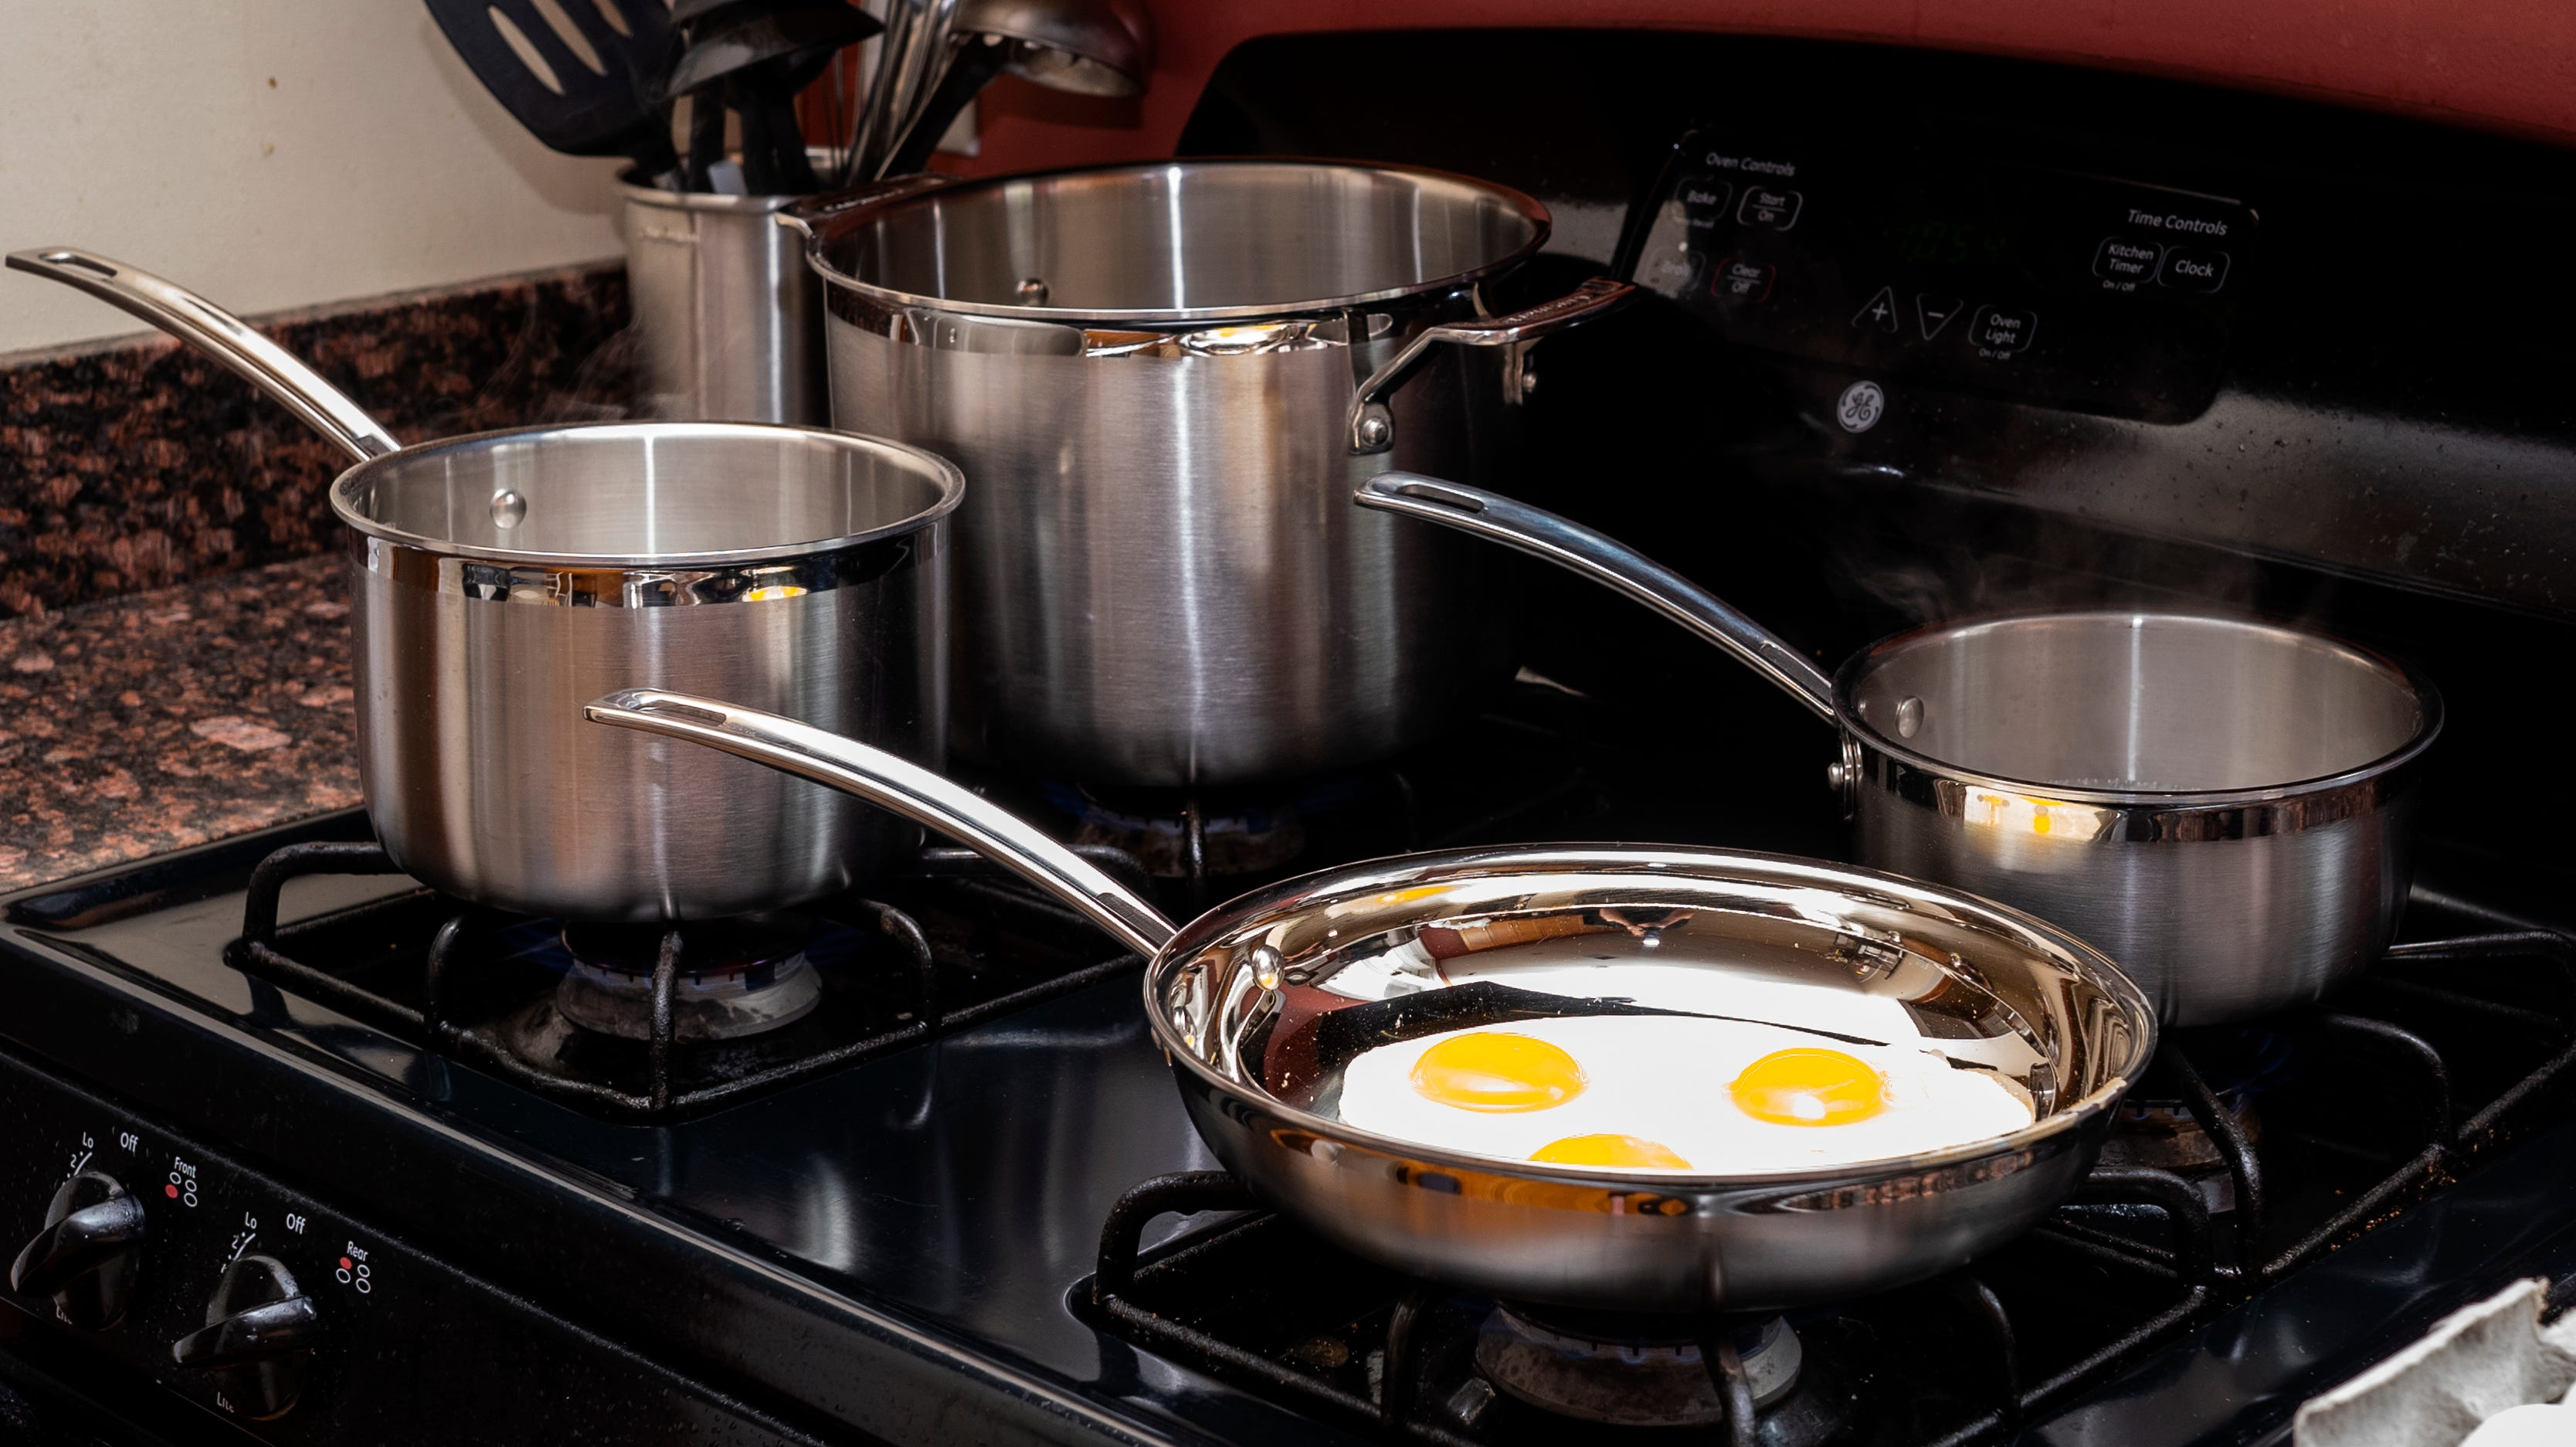 This stainless steel Cuisinart cookware set is the best value on the market—and it's $60 off now